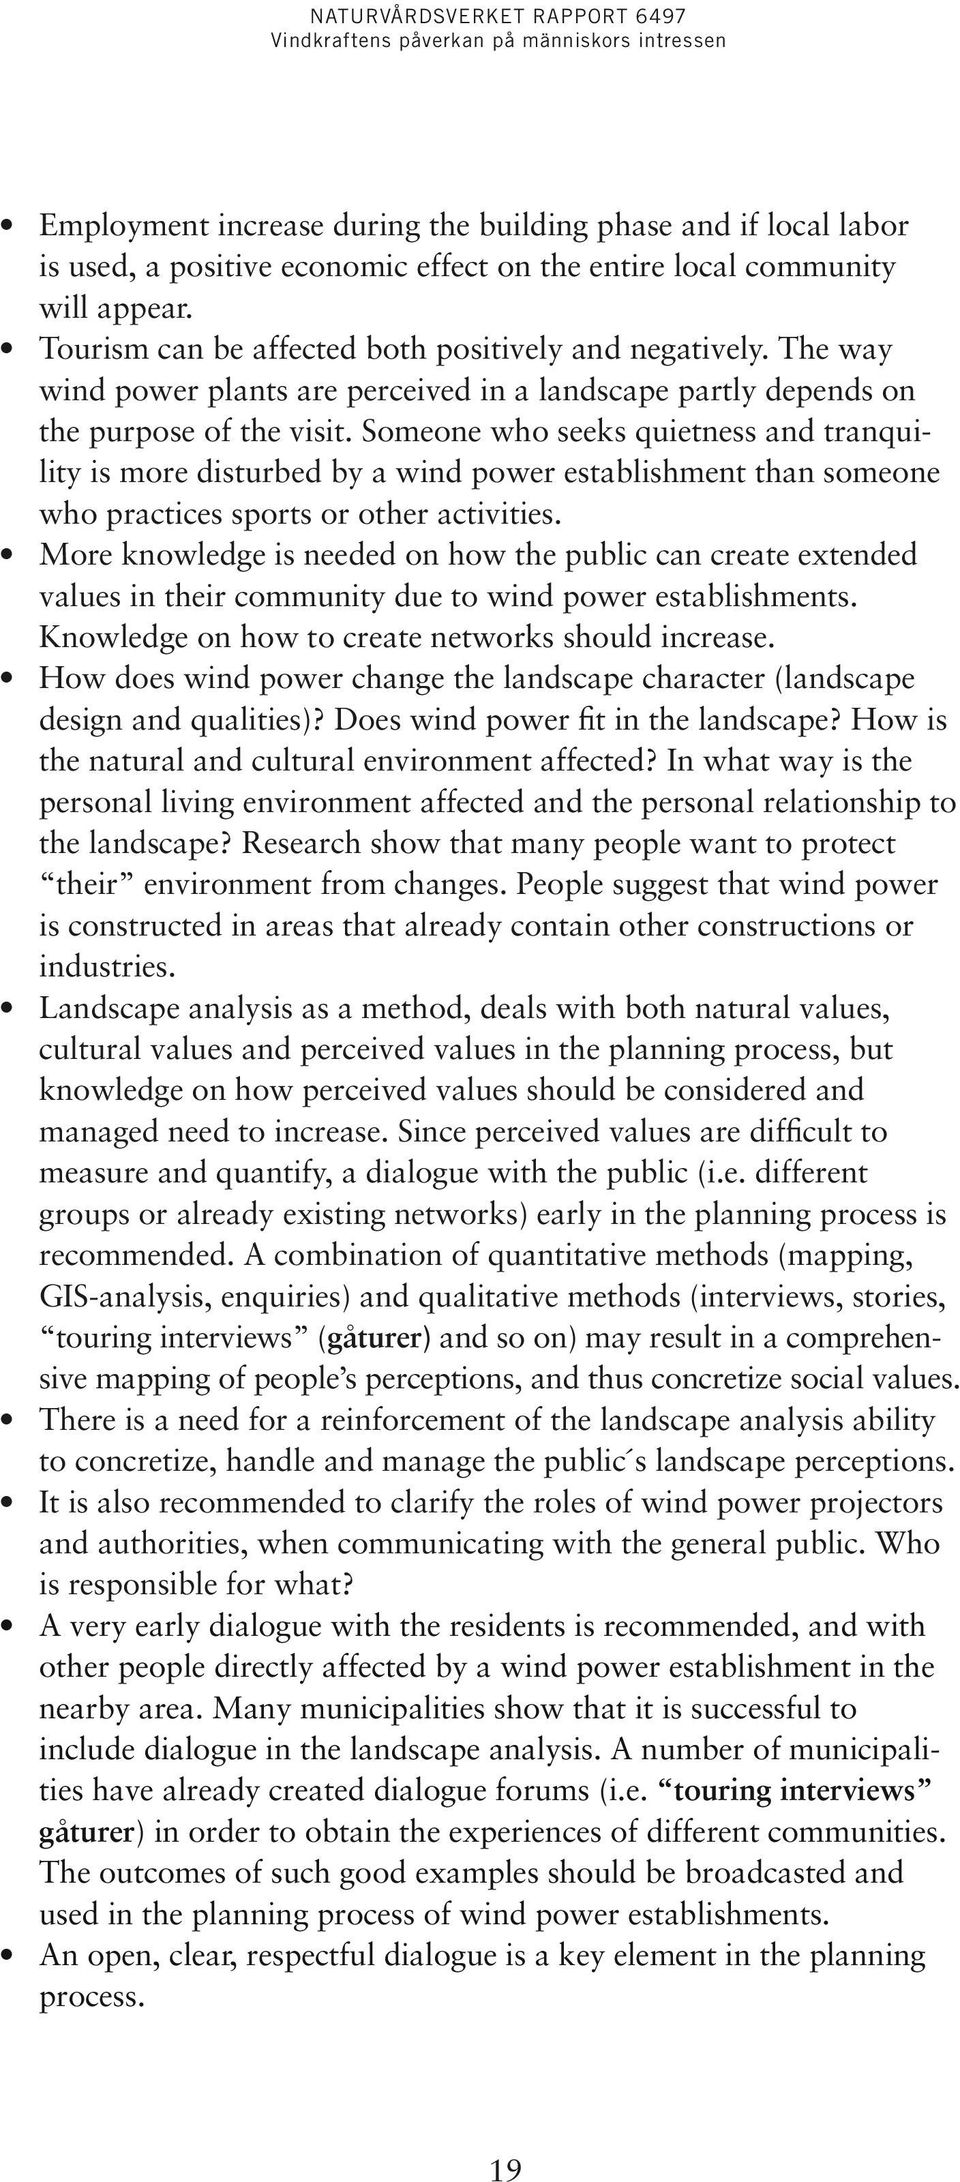 values in their community due to wind power establishments. Knowledge on how to create networks should increase. design and qualities)? Does wind power fit in the landscape?